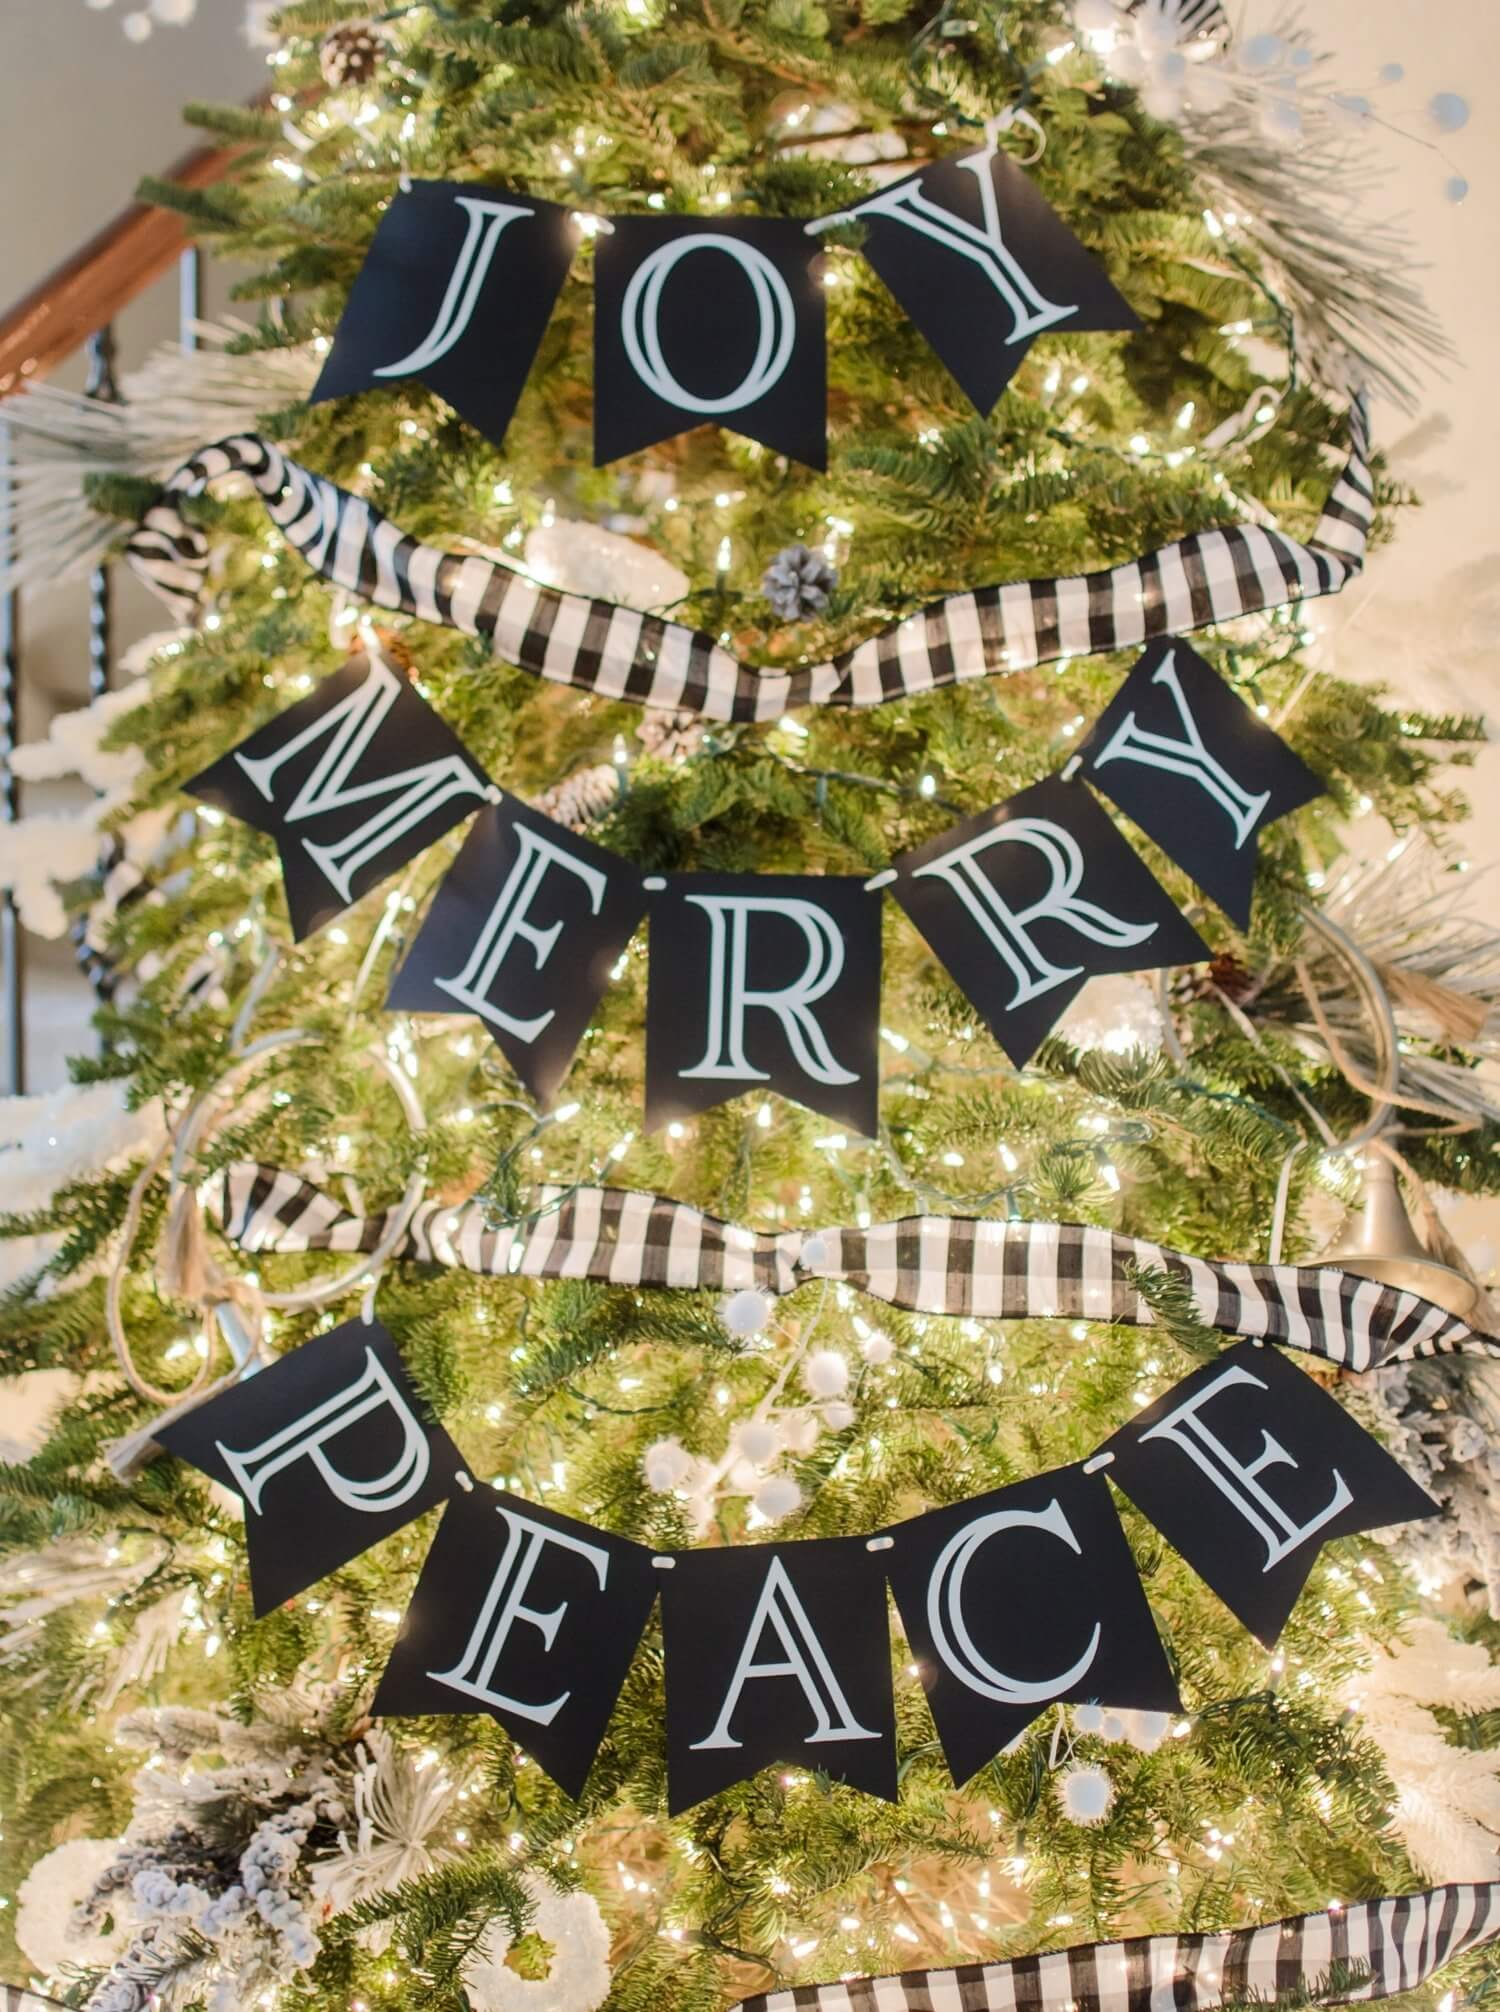 Decorate your Christmas Tree with a beautiful banner, JOY, PEACE and MERRY